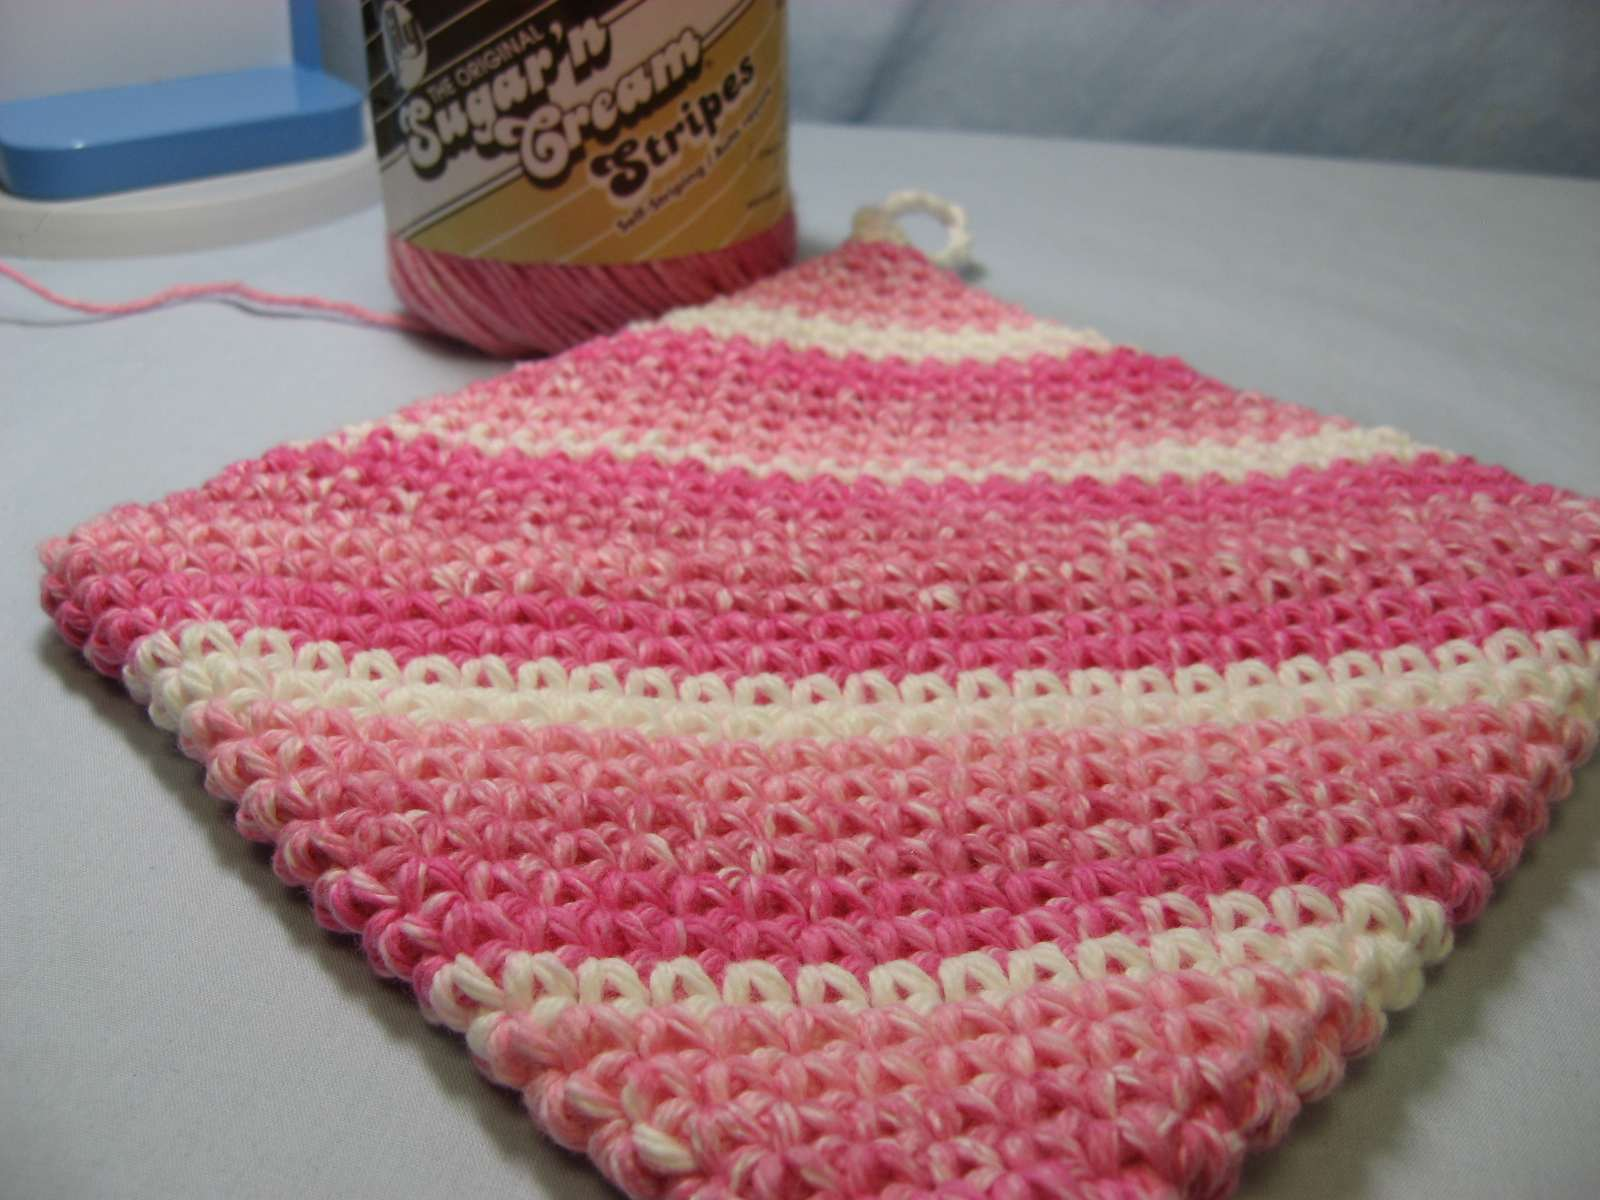 Hooked on Needles: Crocheted Hot Pad/Potholder - It\'s double thick!